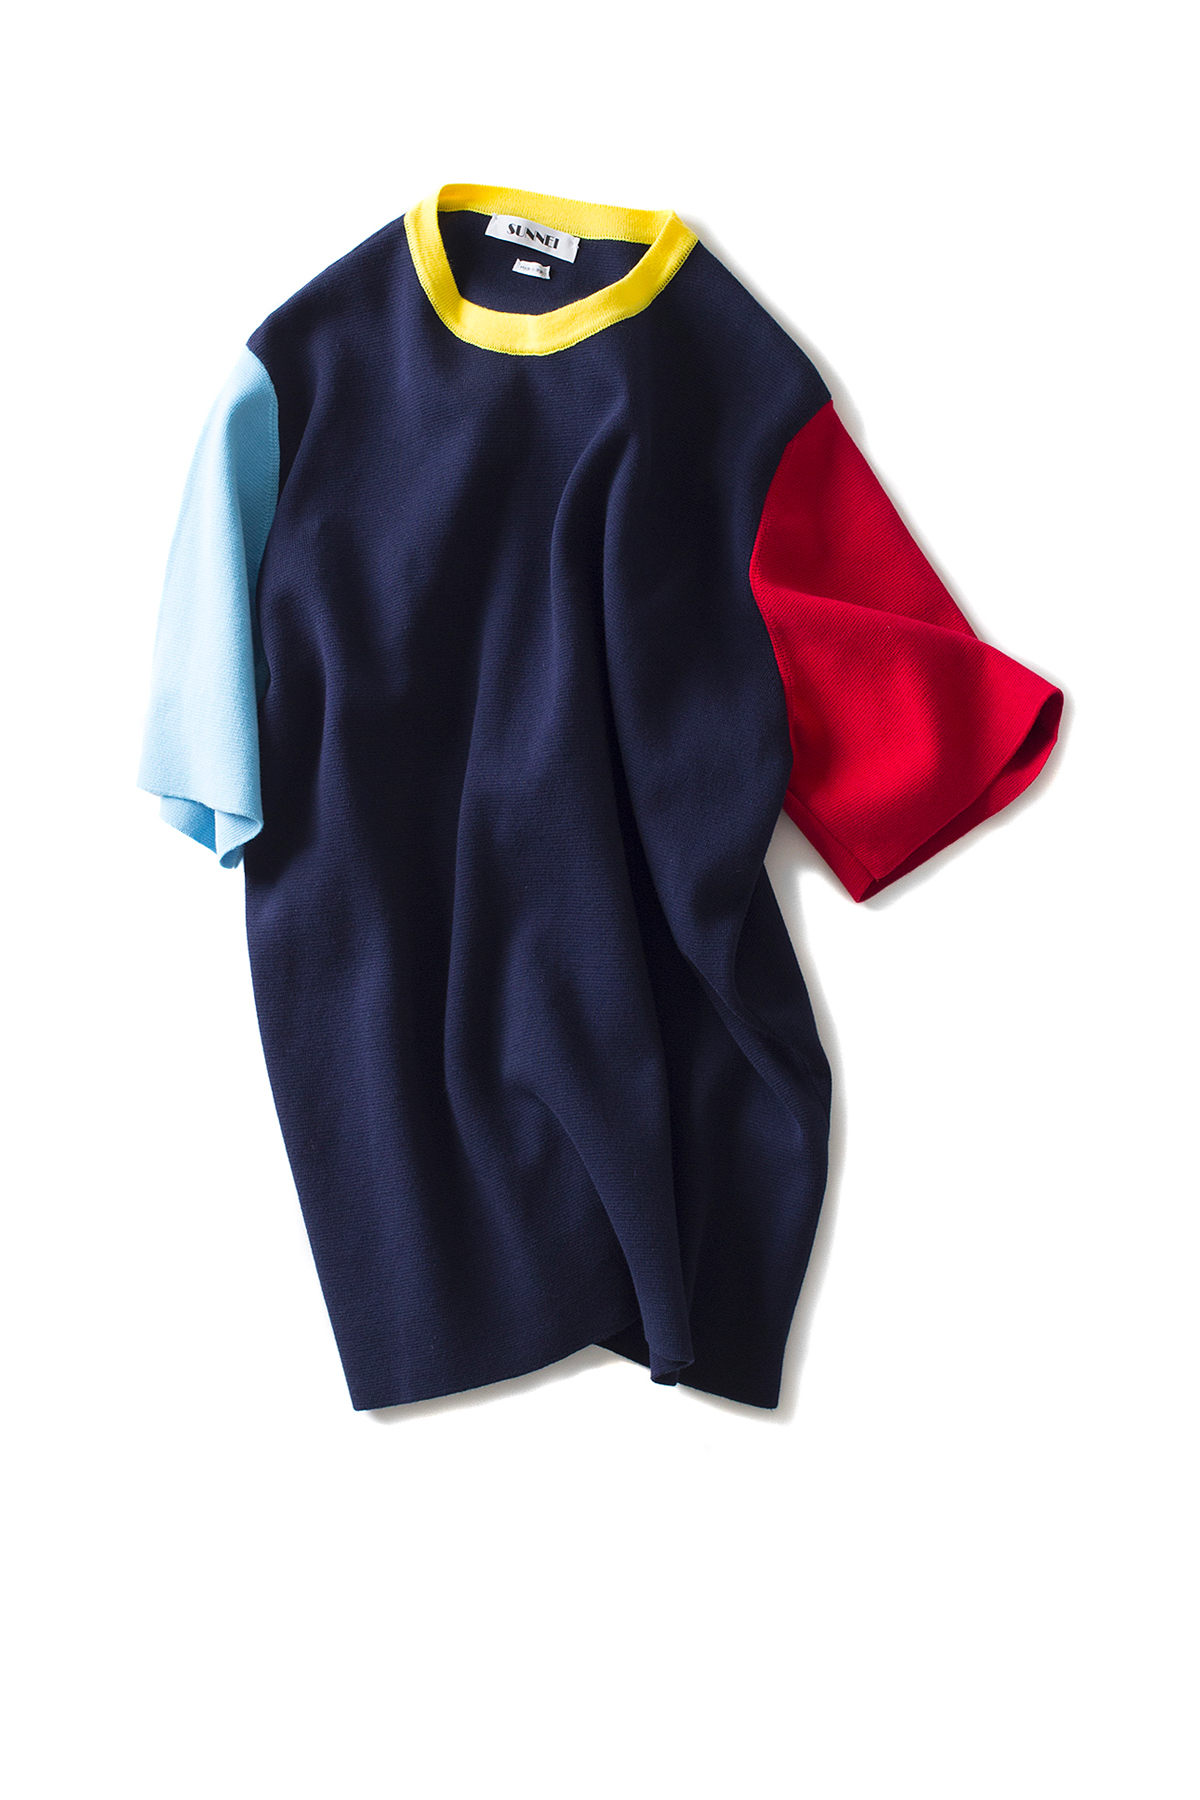 SUNNEI : Knit T-Shirts S/S (Navy / Azure / Red Wine / Yellow)